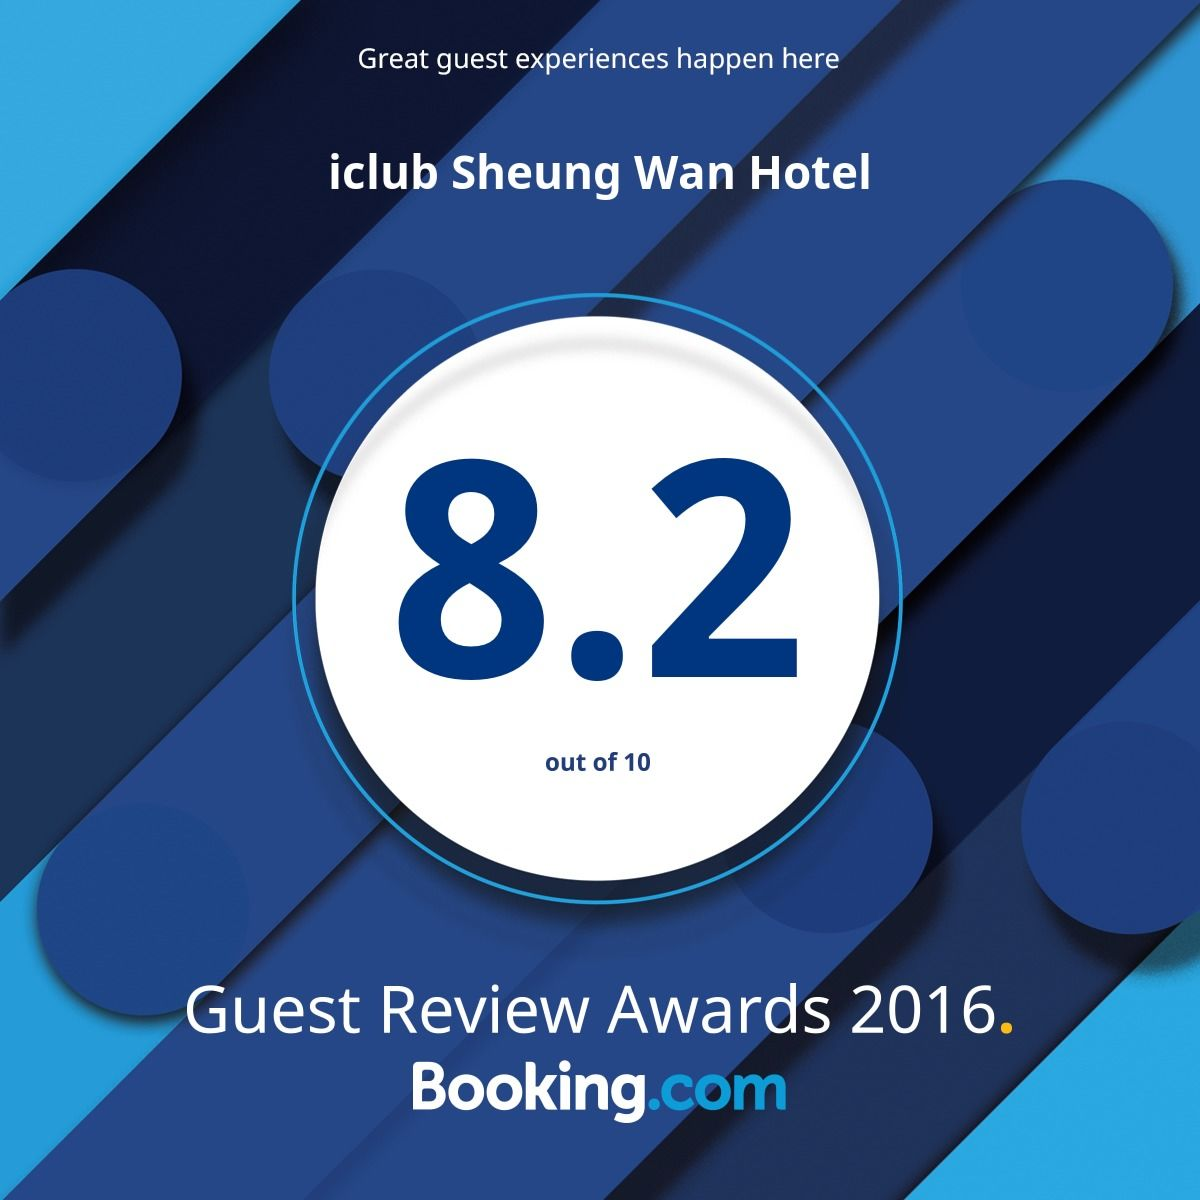 Booking.com - Guest Review Award 2016